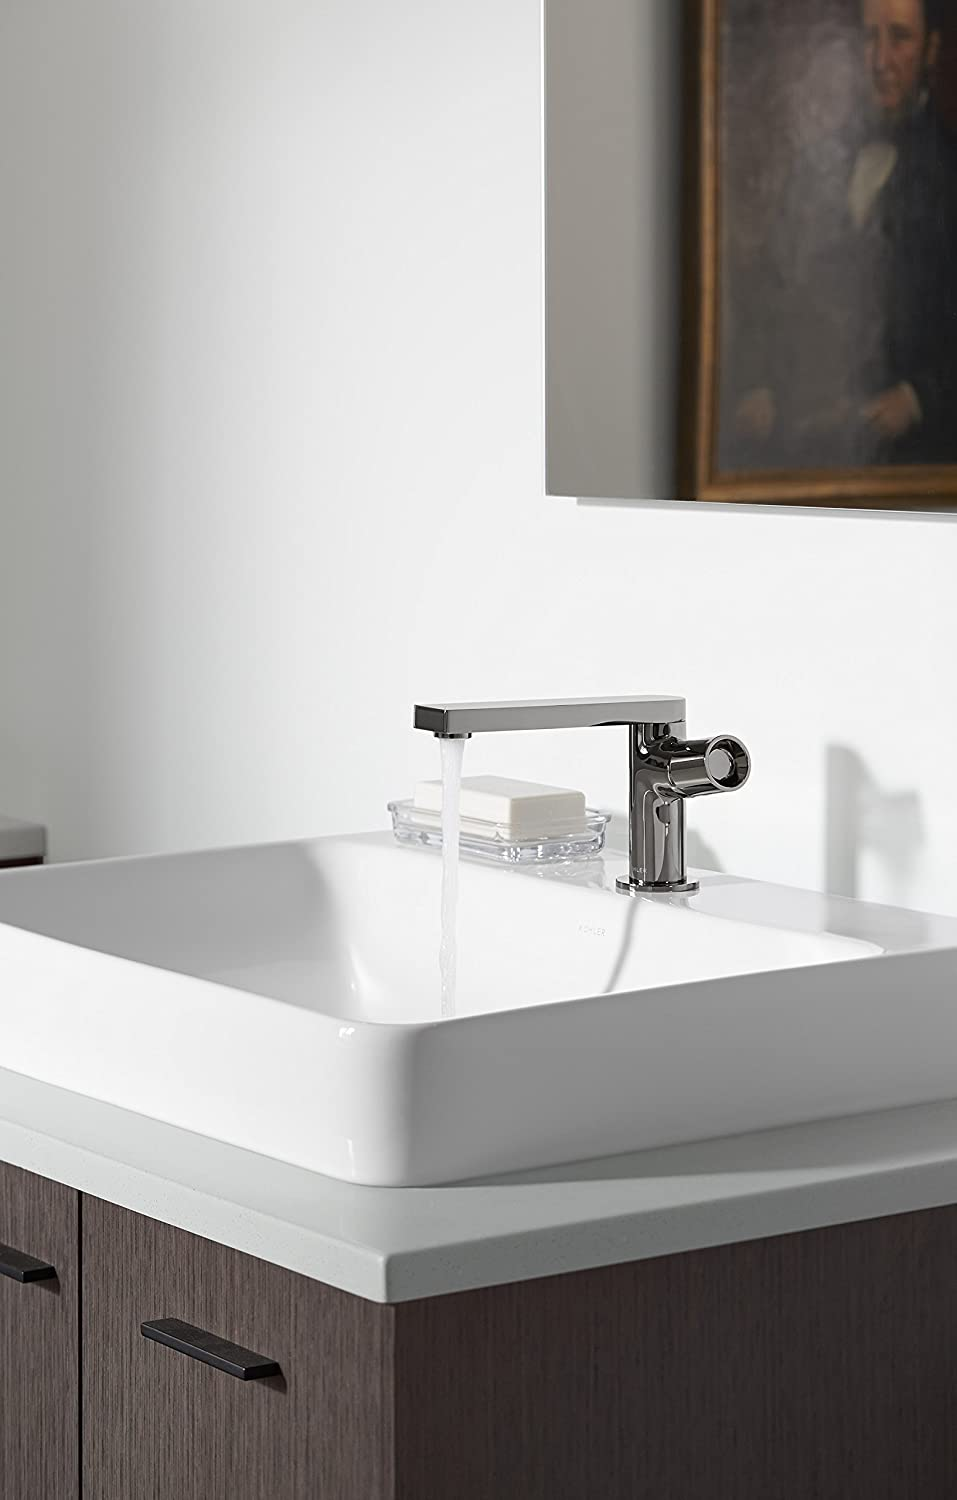 Bathroom sinks with options for everyone - Kohler K 2660 1 0 Vox Rectangle Vessel With Faucet Deck White Vessel Sinks Amazon Com